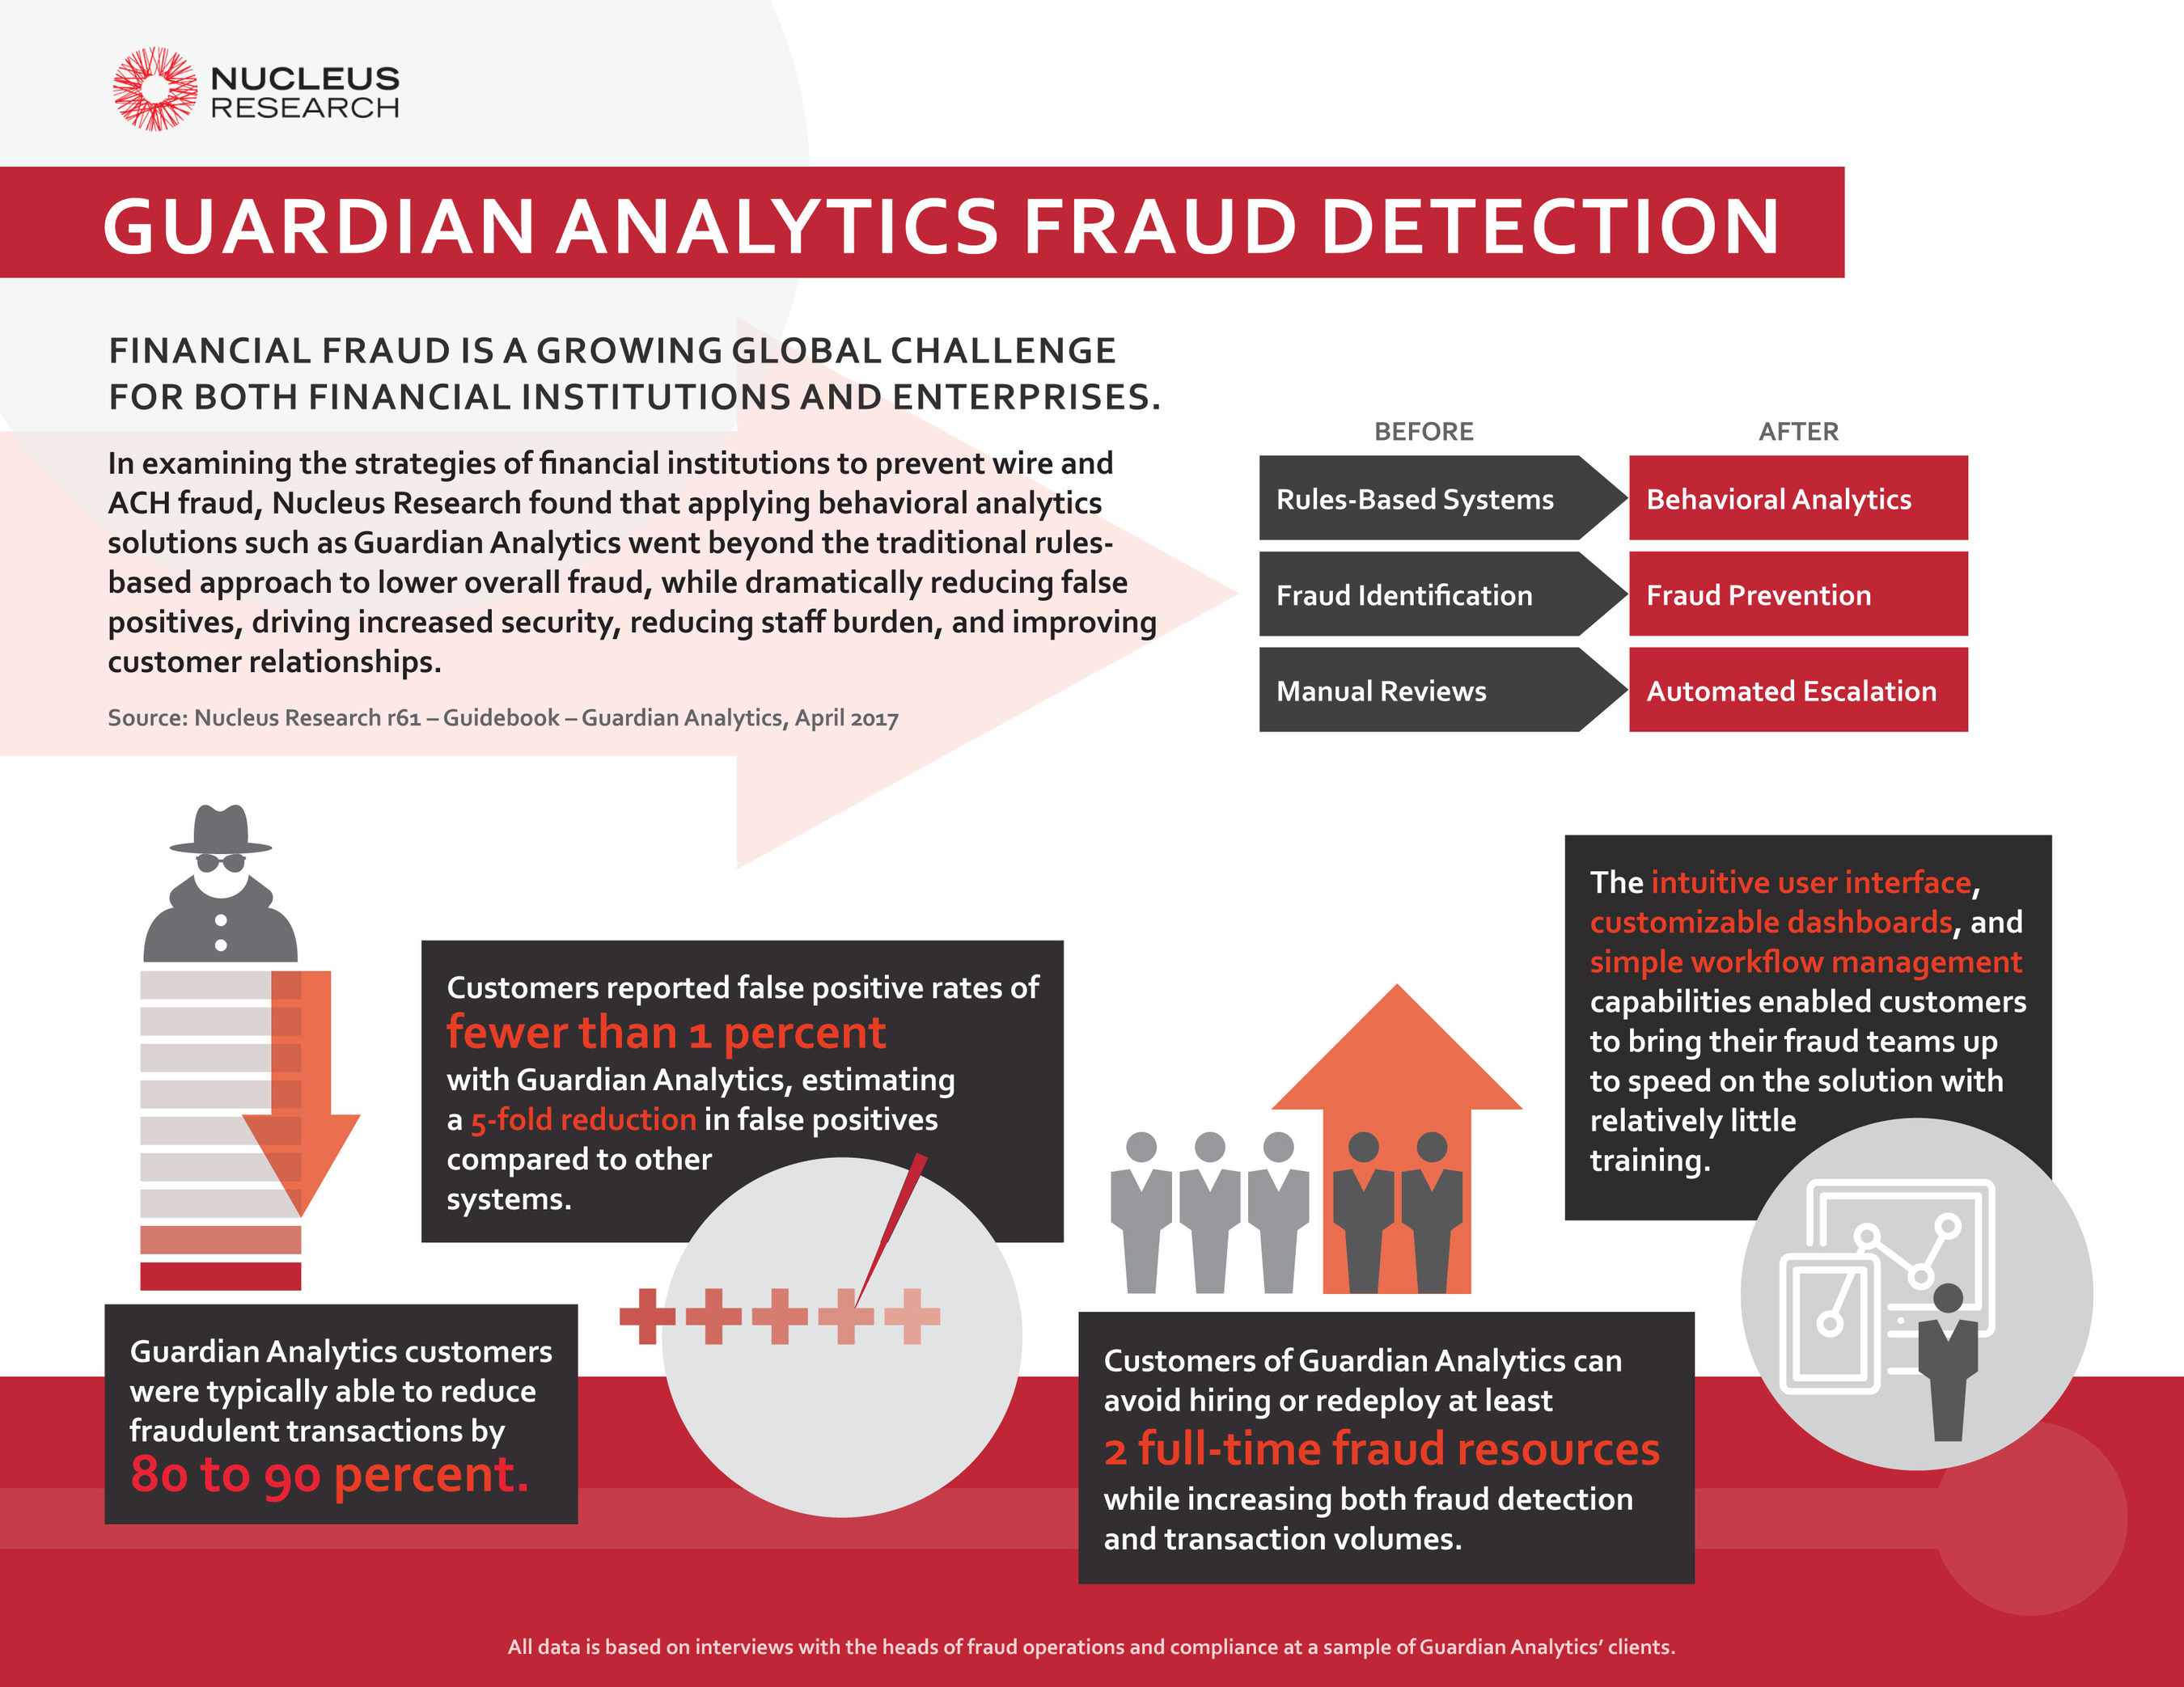 FINANCIAL FRAUD IS A GROWING GLOBAL CHALLENGE FOR BOTH FINANCIAL INSTITUTIONS AND ENTERPRISES.